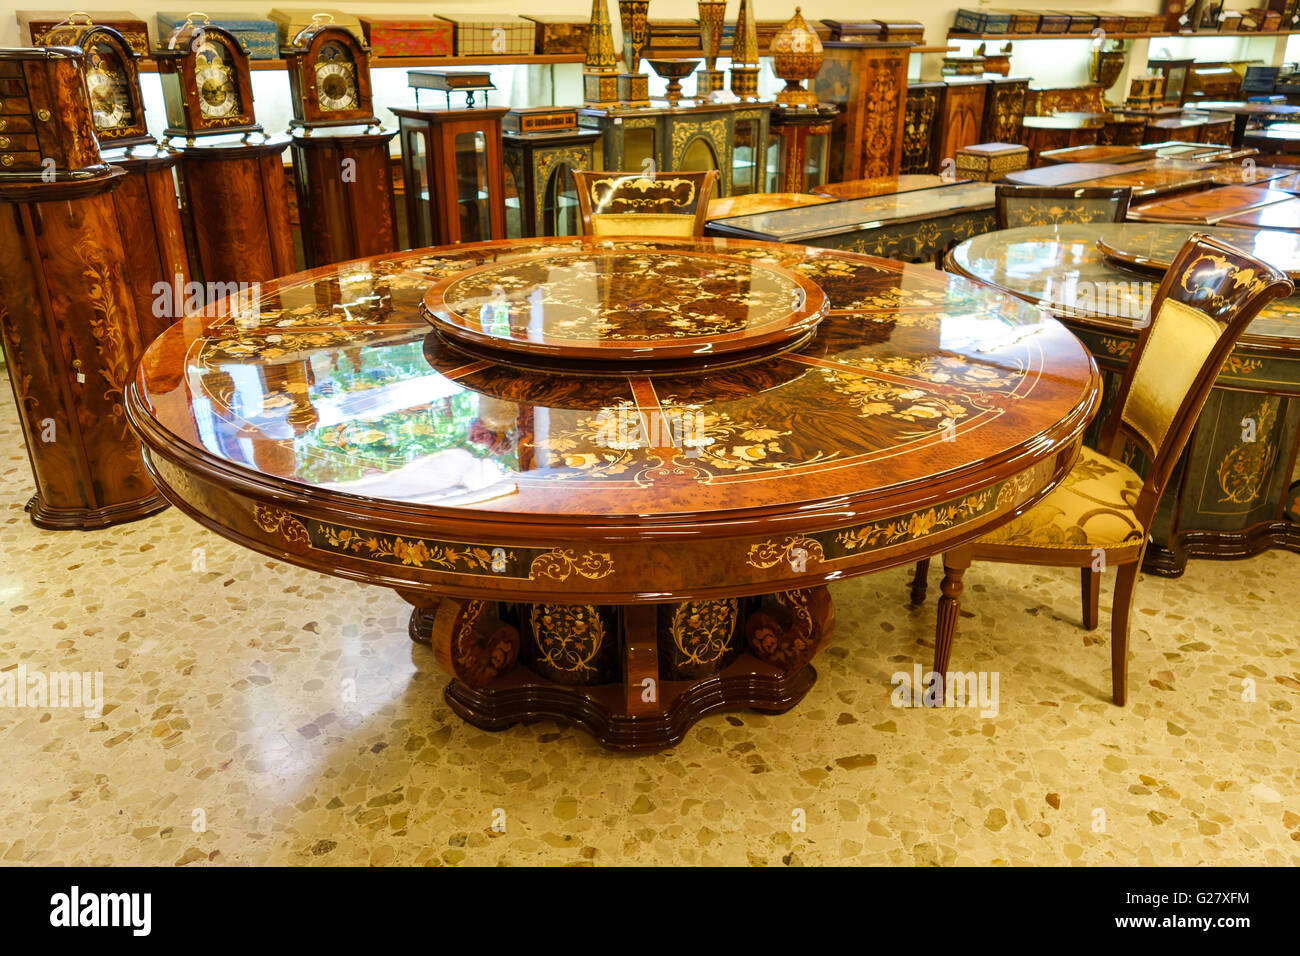 ornate wooden inlaid furniture tables clocks etc for sale in a shop stock photo 104666008 alamy. Black Bedroom Furniture Sets. Home Design Ideas